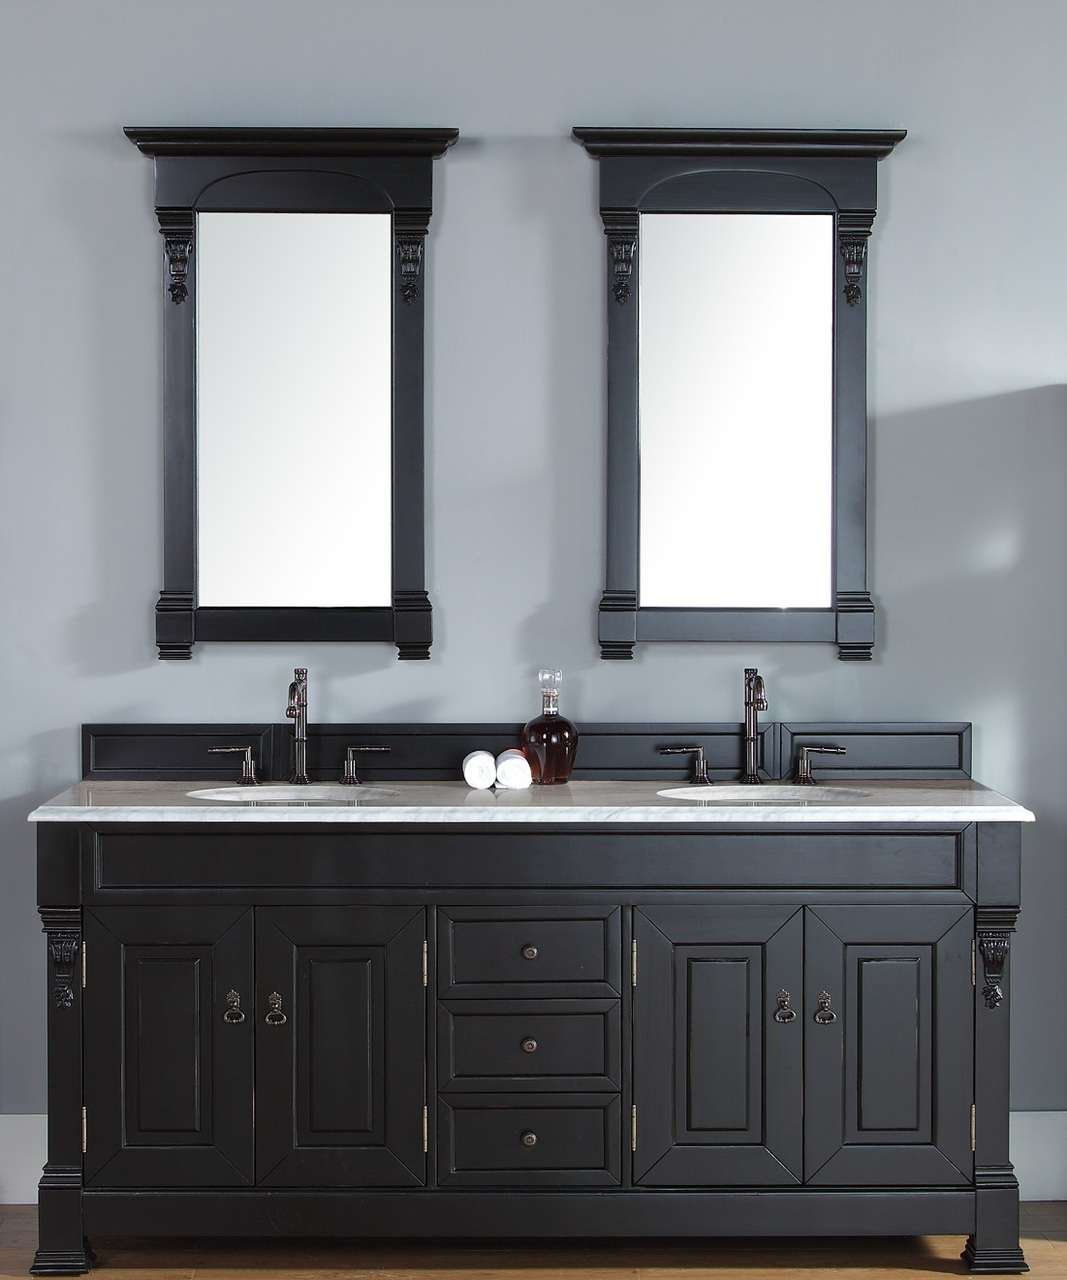 Abstron 72 Inch Antique Black Double Bathroom Vanity Optional Countertops